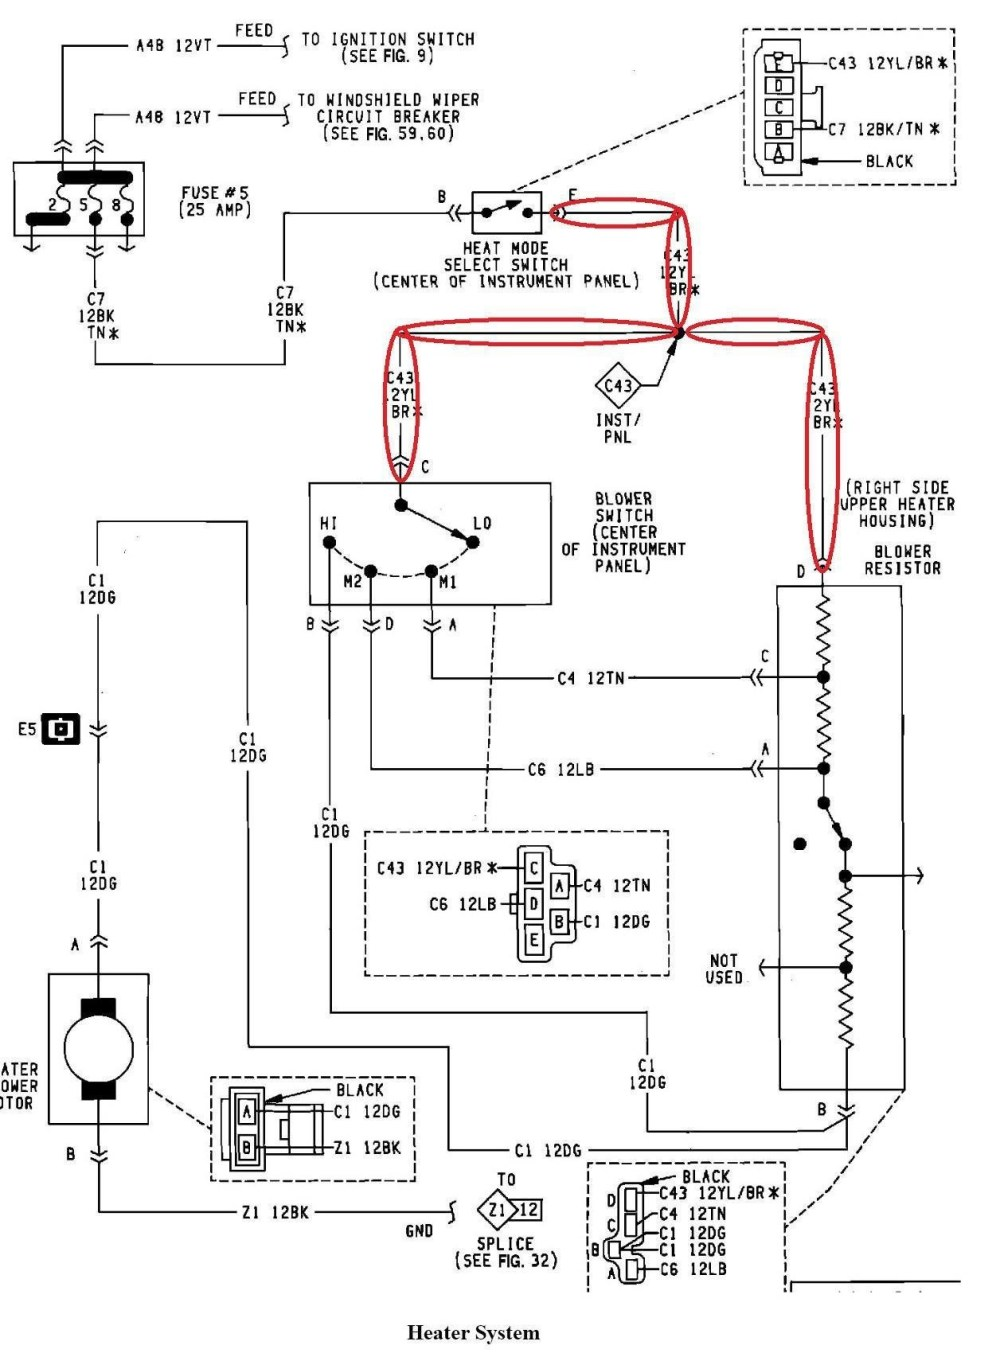 medium resolution of 2001 yamaha 36 volt wiring diagram wiring diagram rows wiring diagram 36v